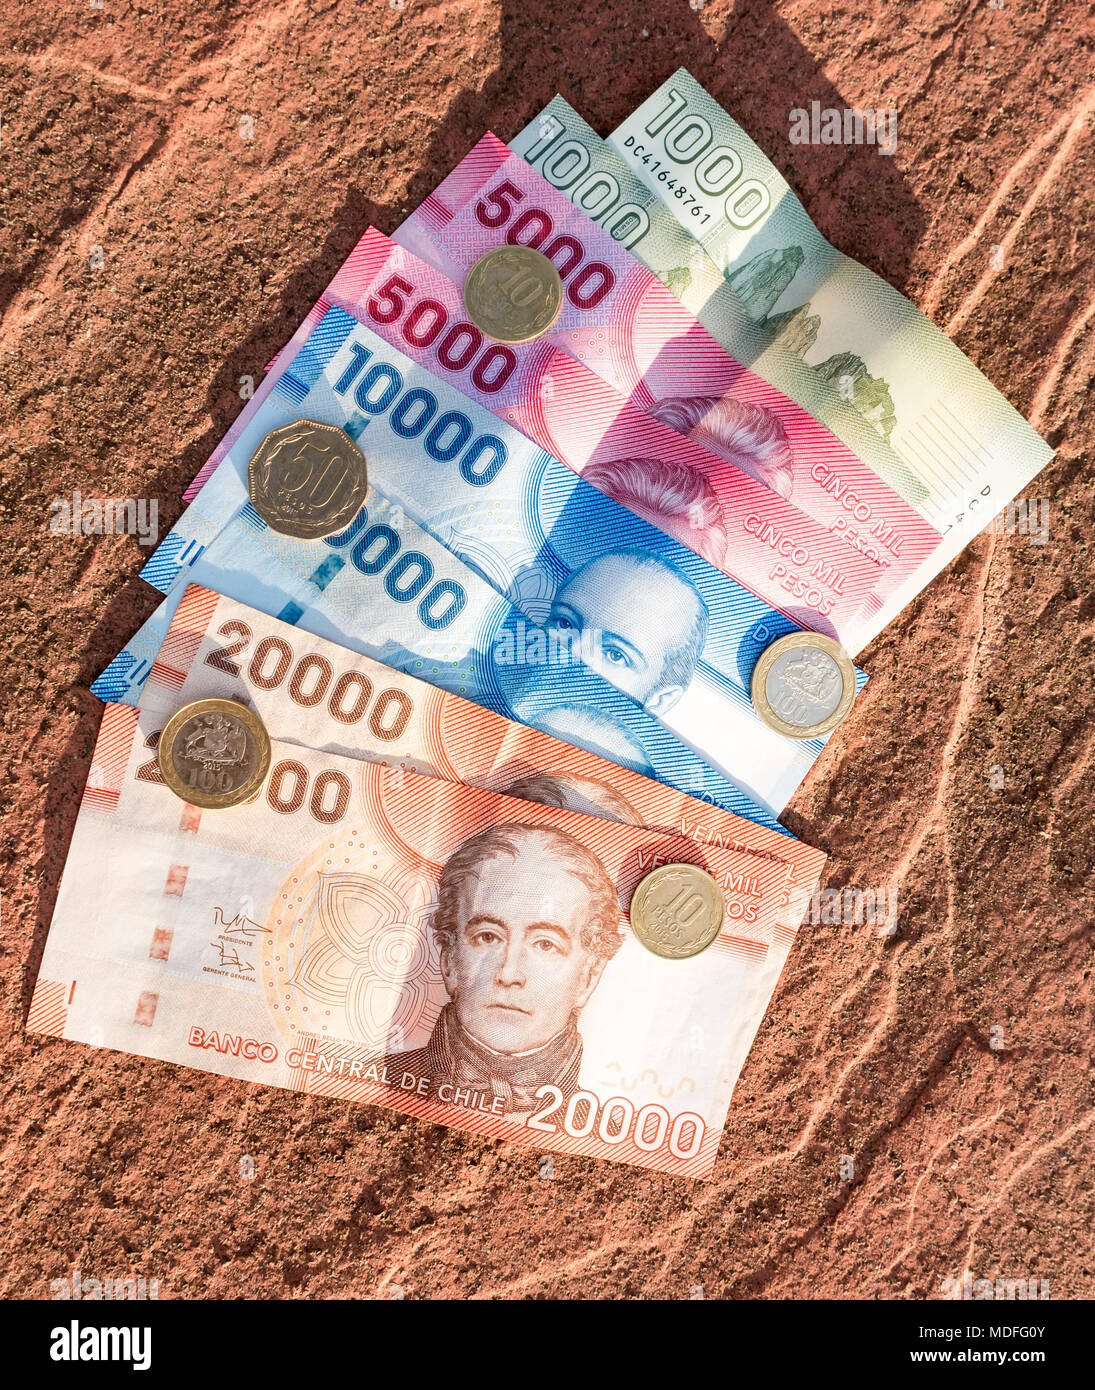 1000 Peso High Resolution Stock Photography And Images Alamy